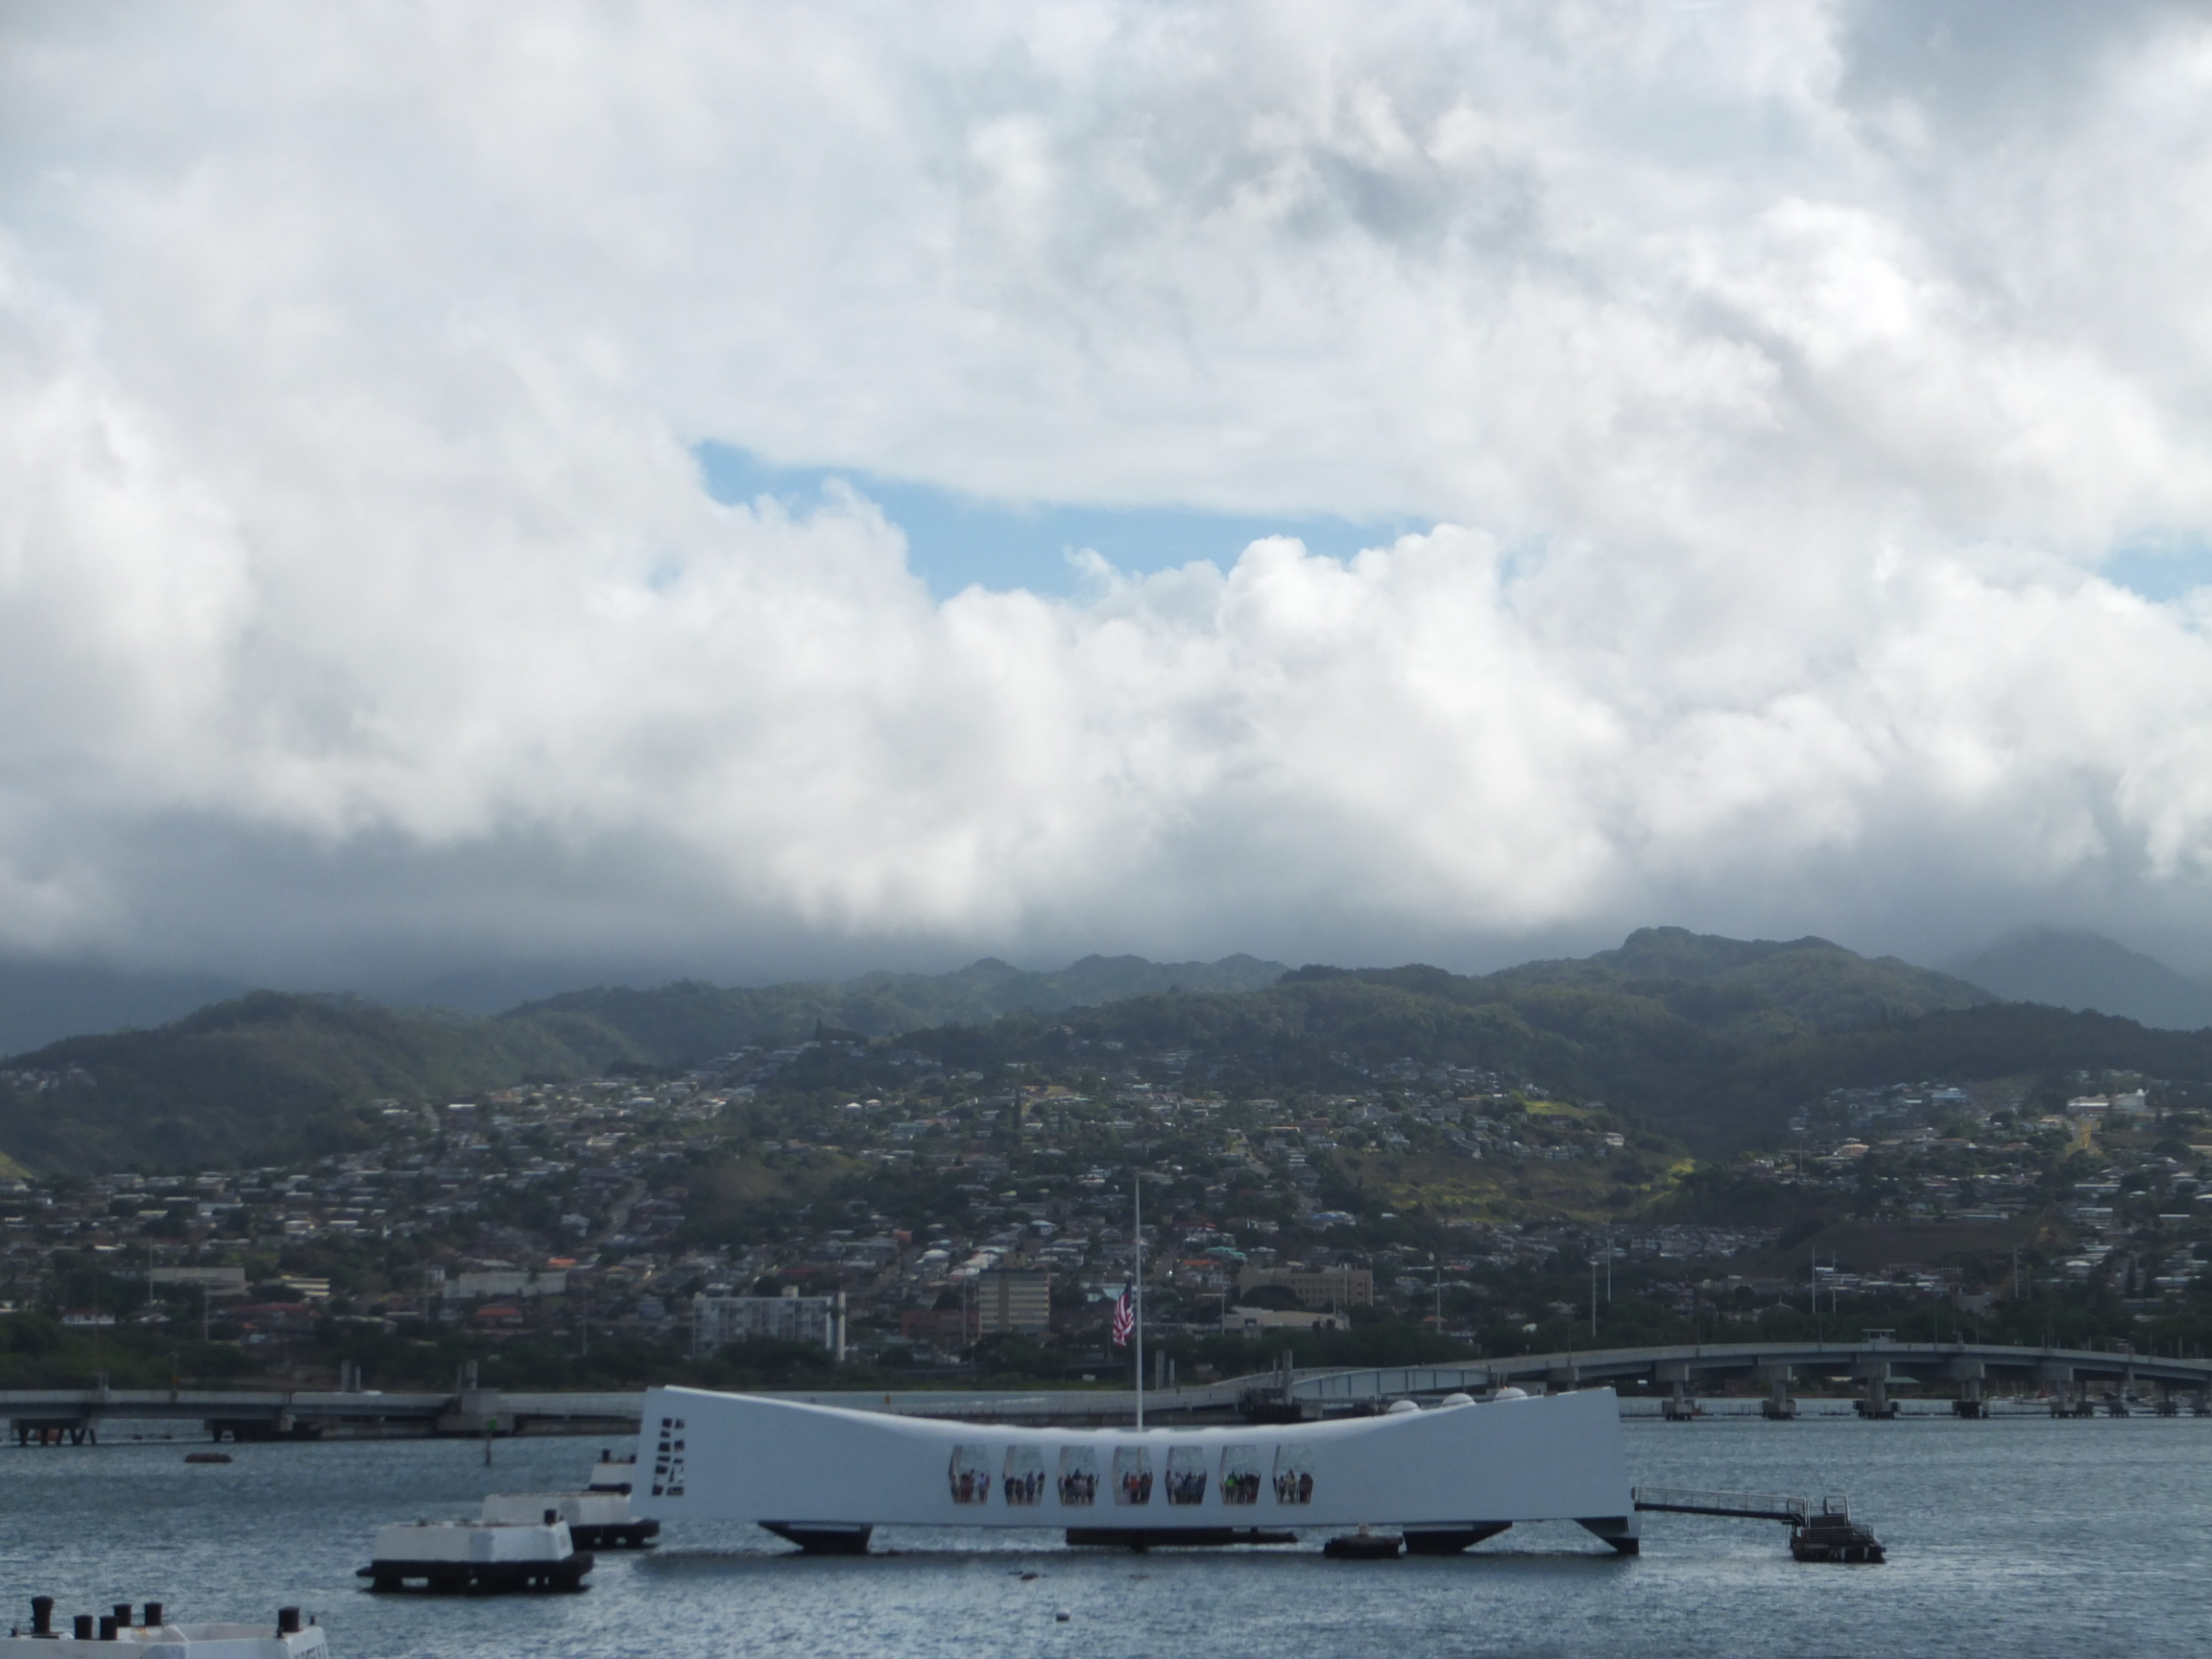 The Arizona Memorial